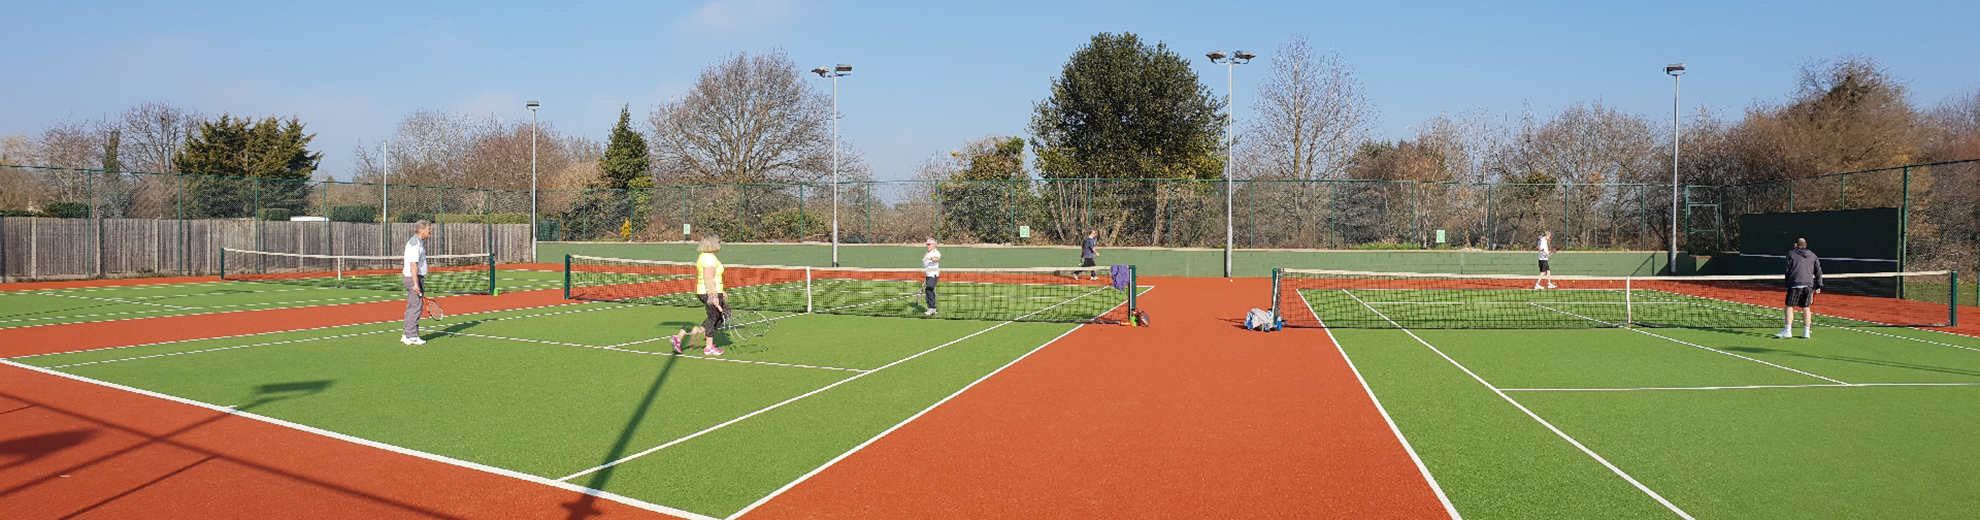 Croxley Tennis Club - Apply for Membership